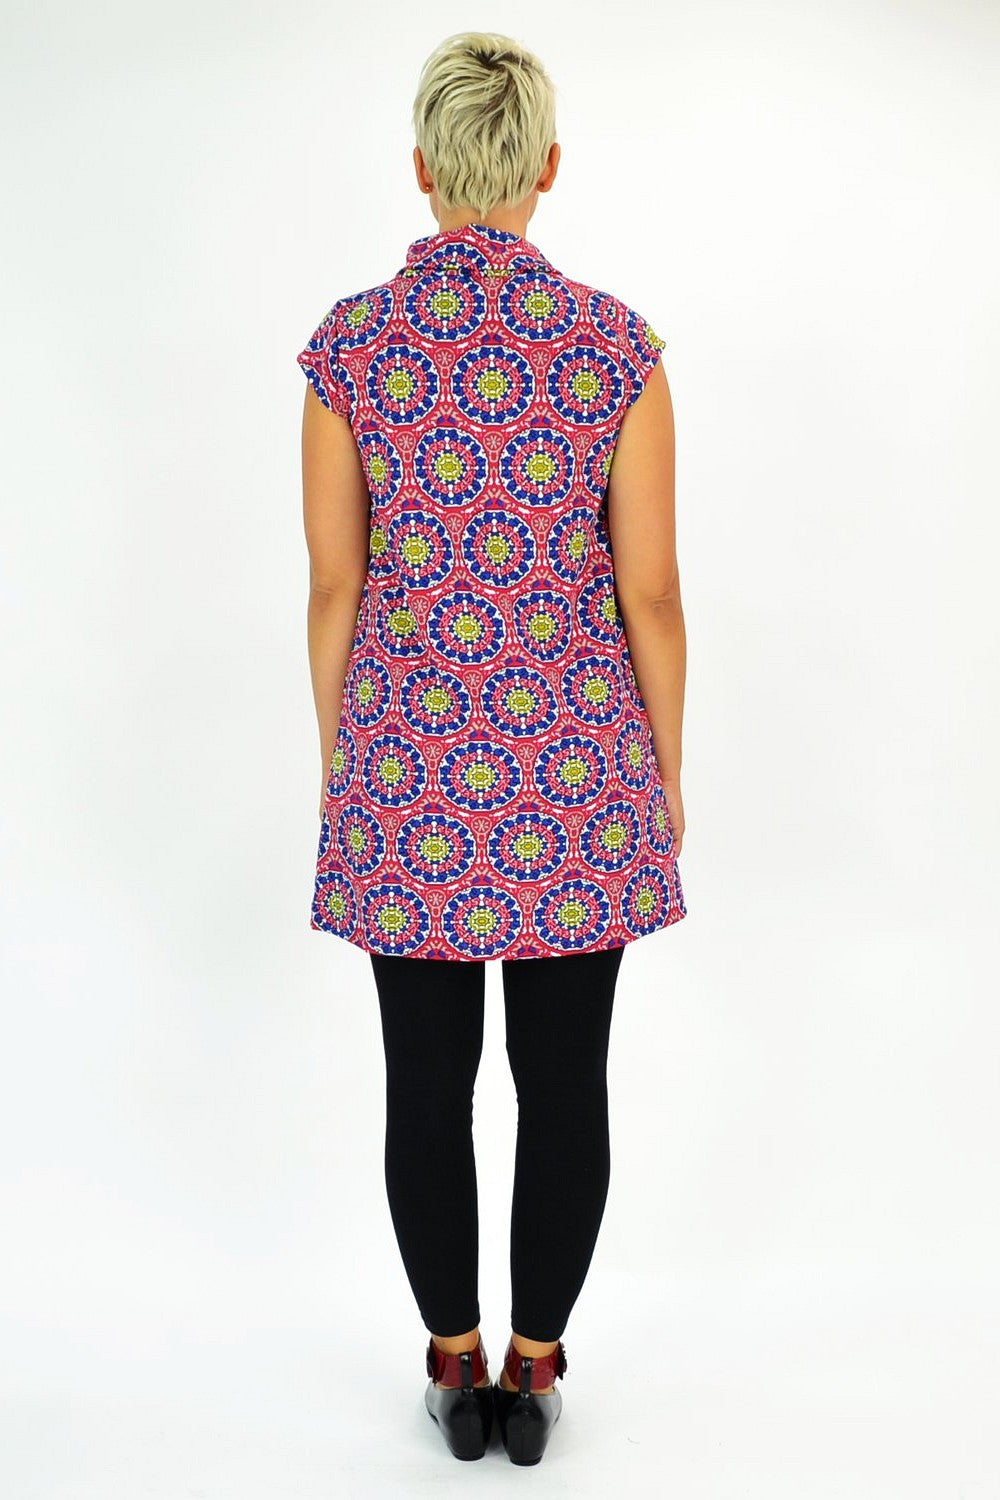 Pink Rosie Tunic - at I Love Tunics @ www.ilovetunics.com = Number One! Tunics Destination